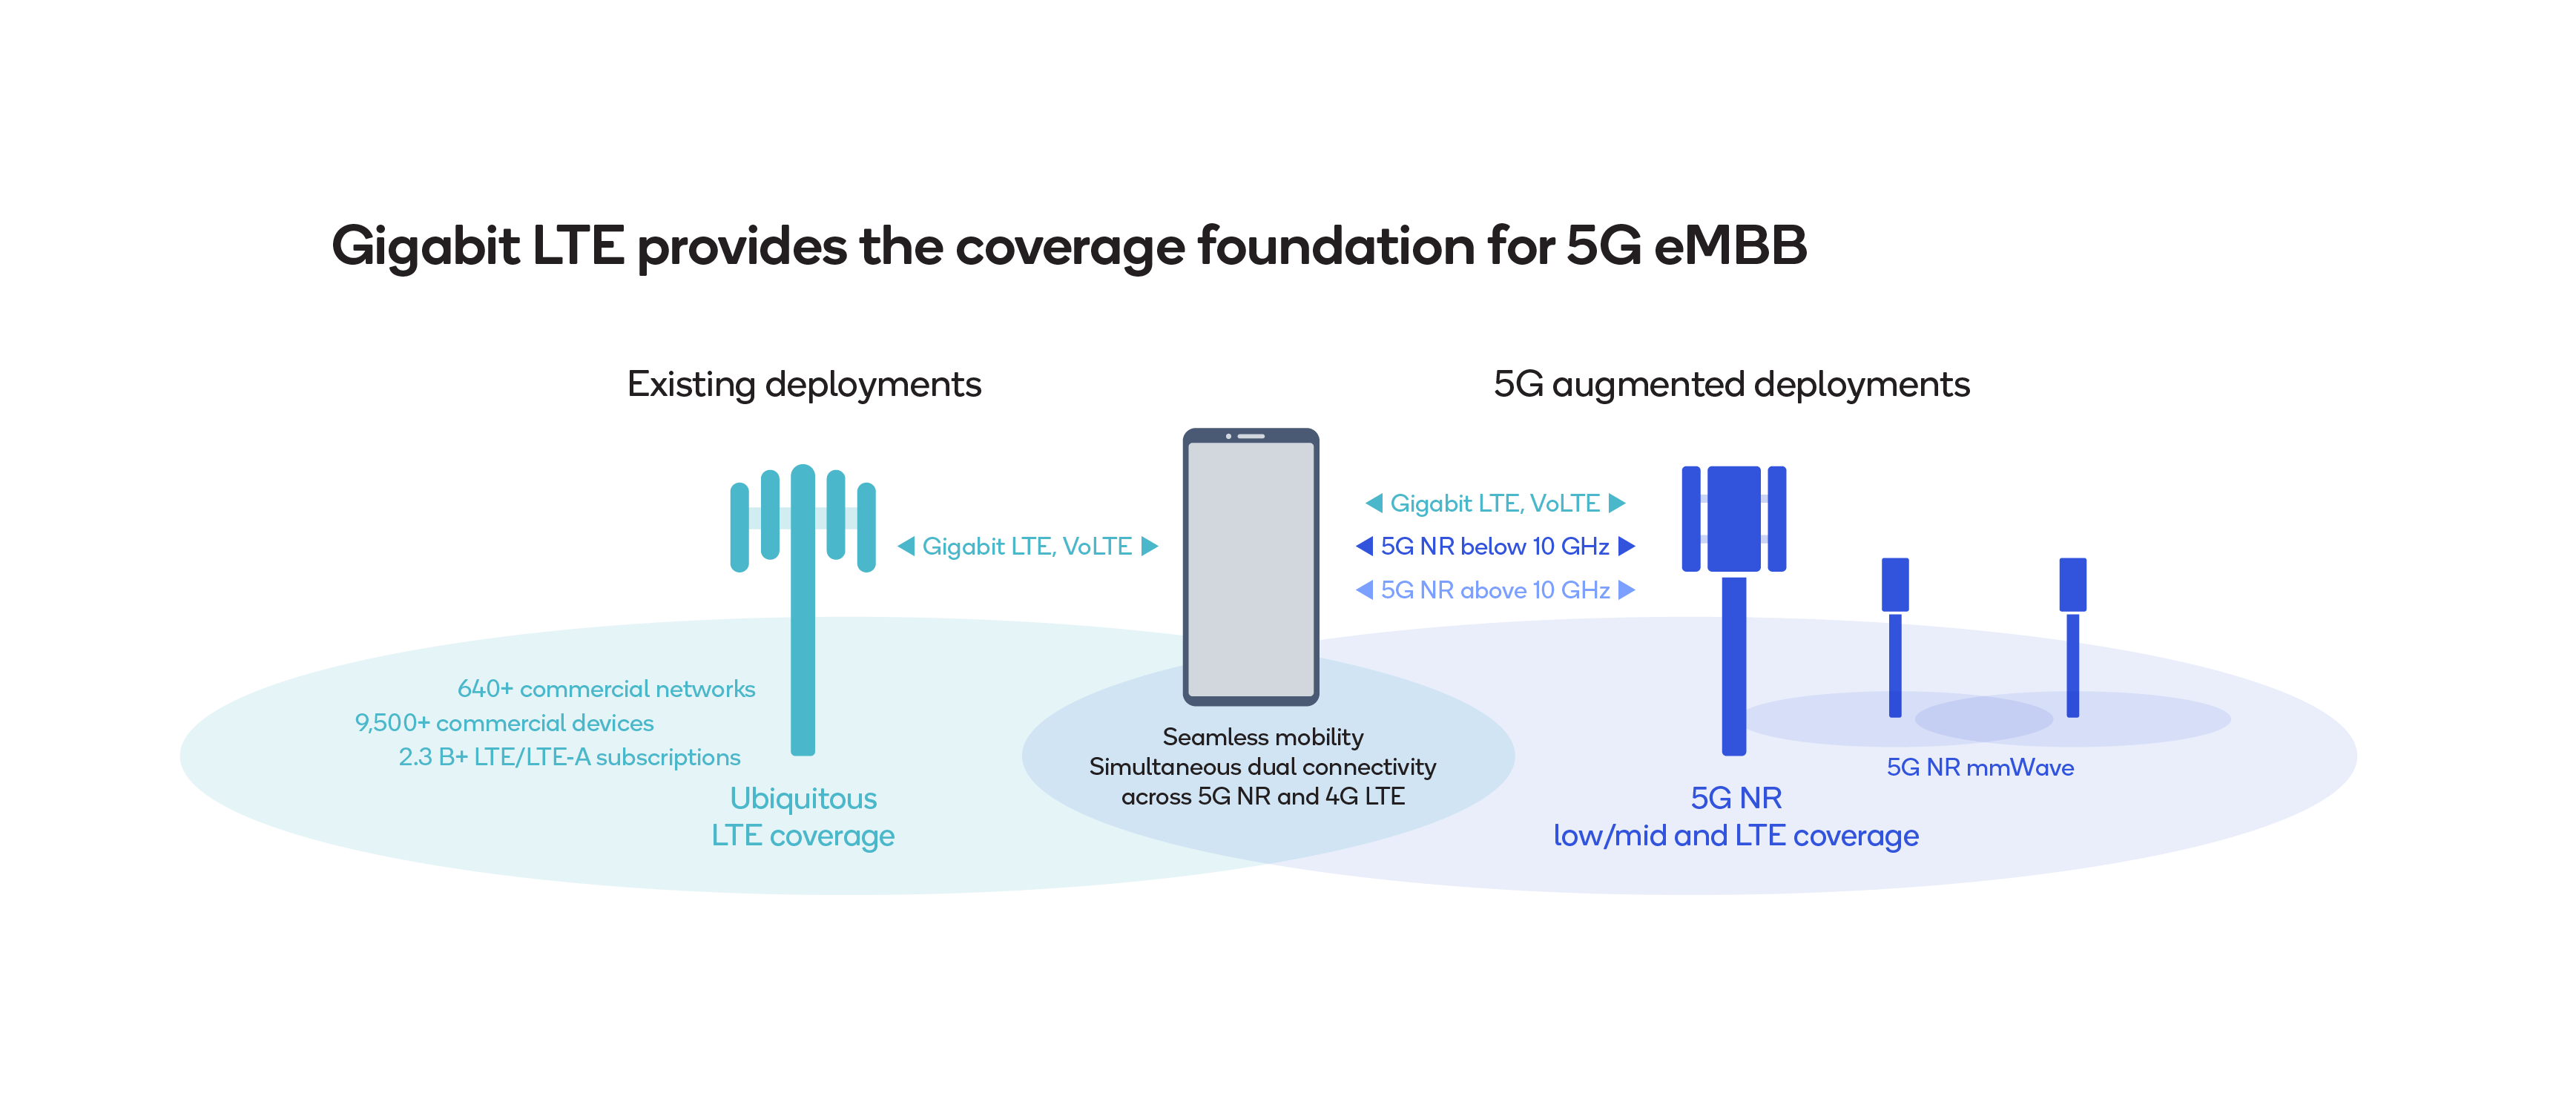 Figure 3: LTE supplementing 5G NR